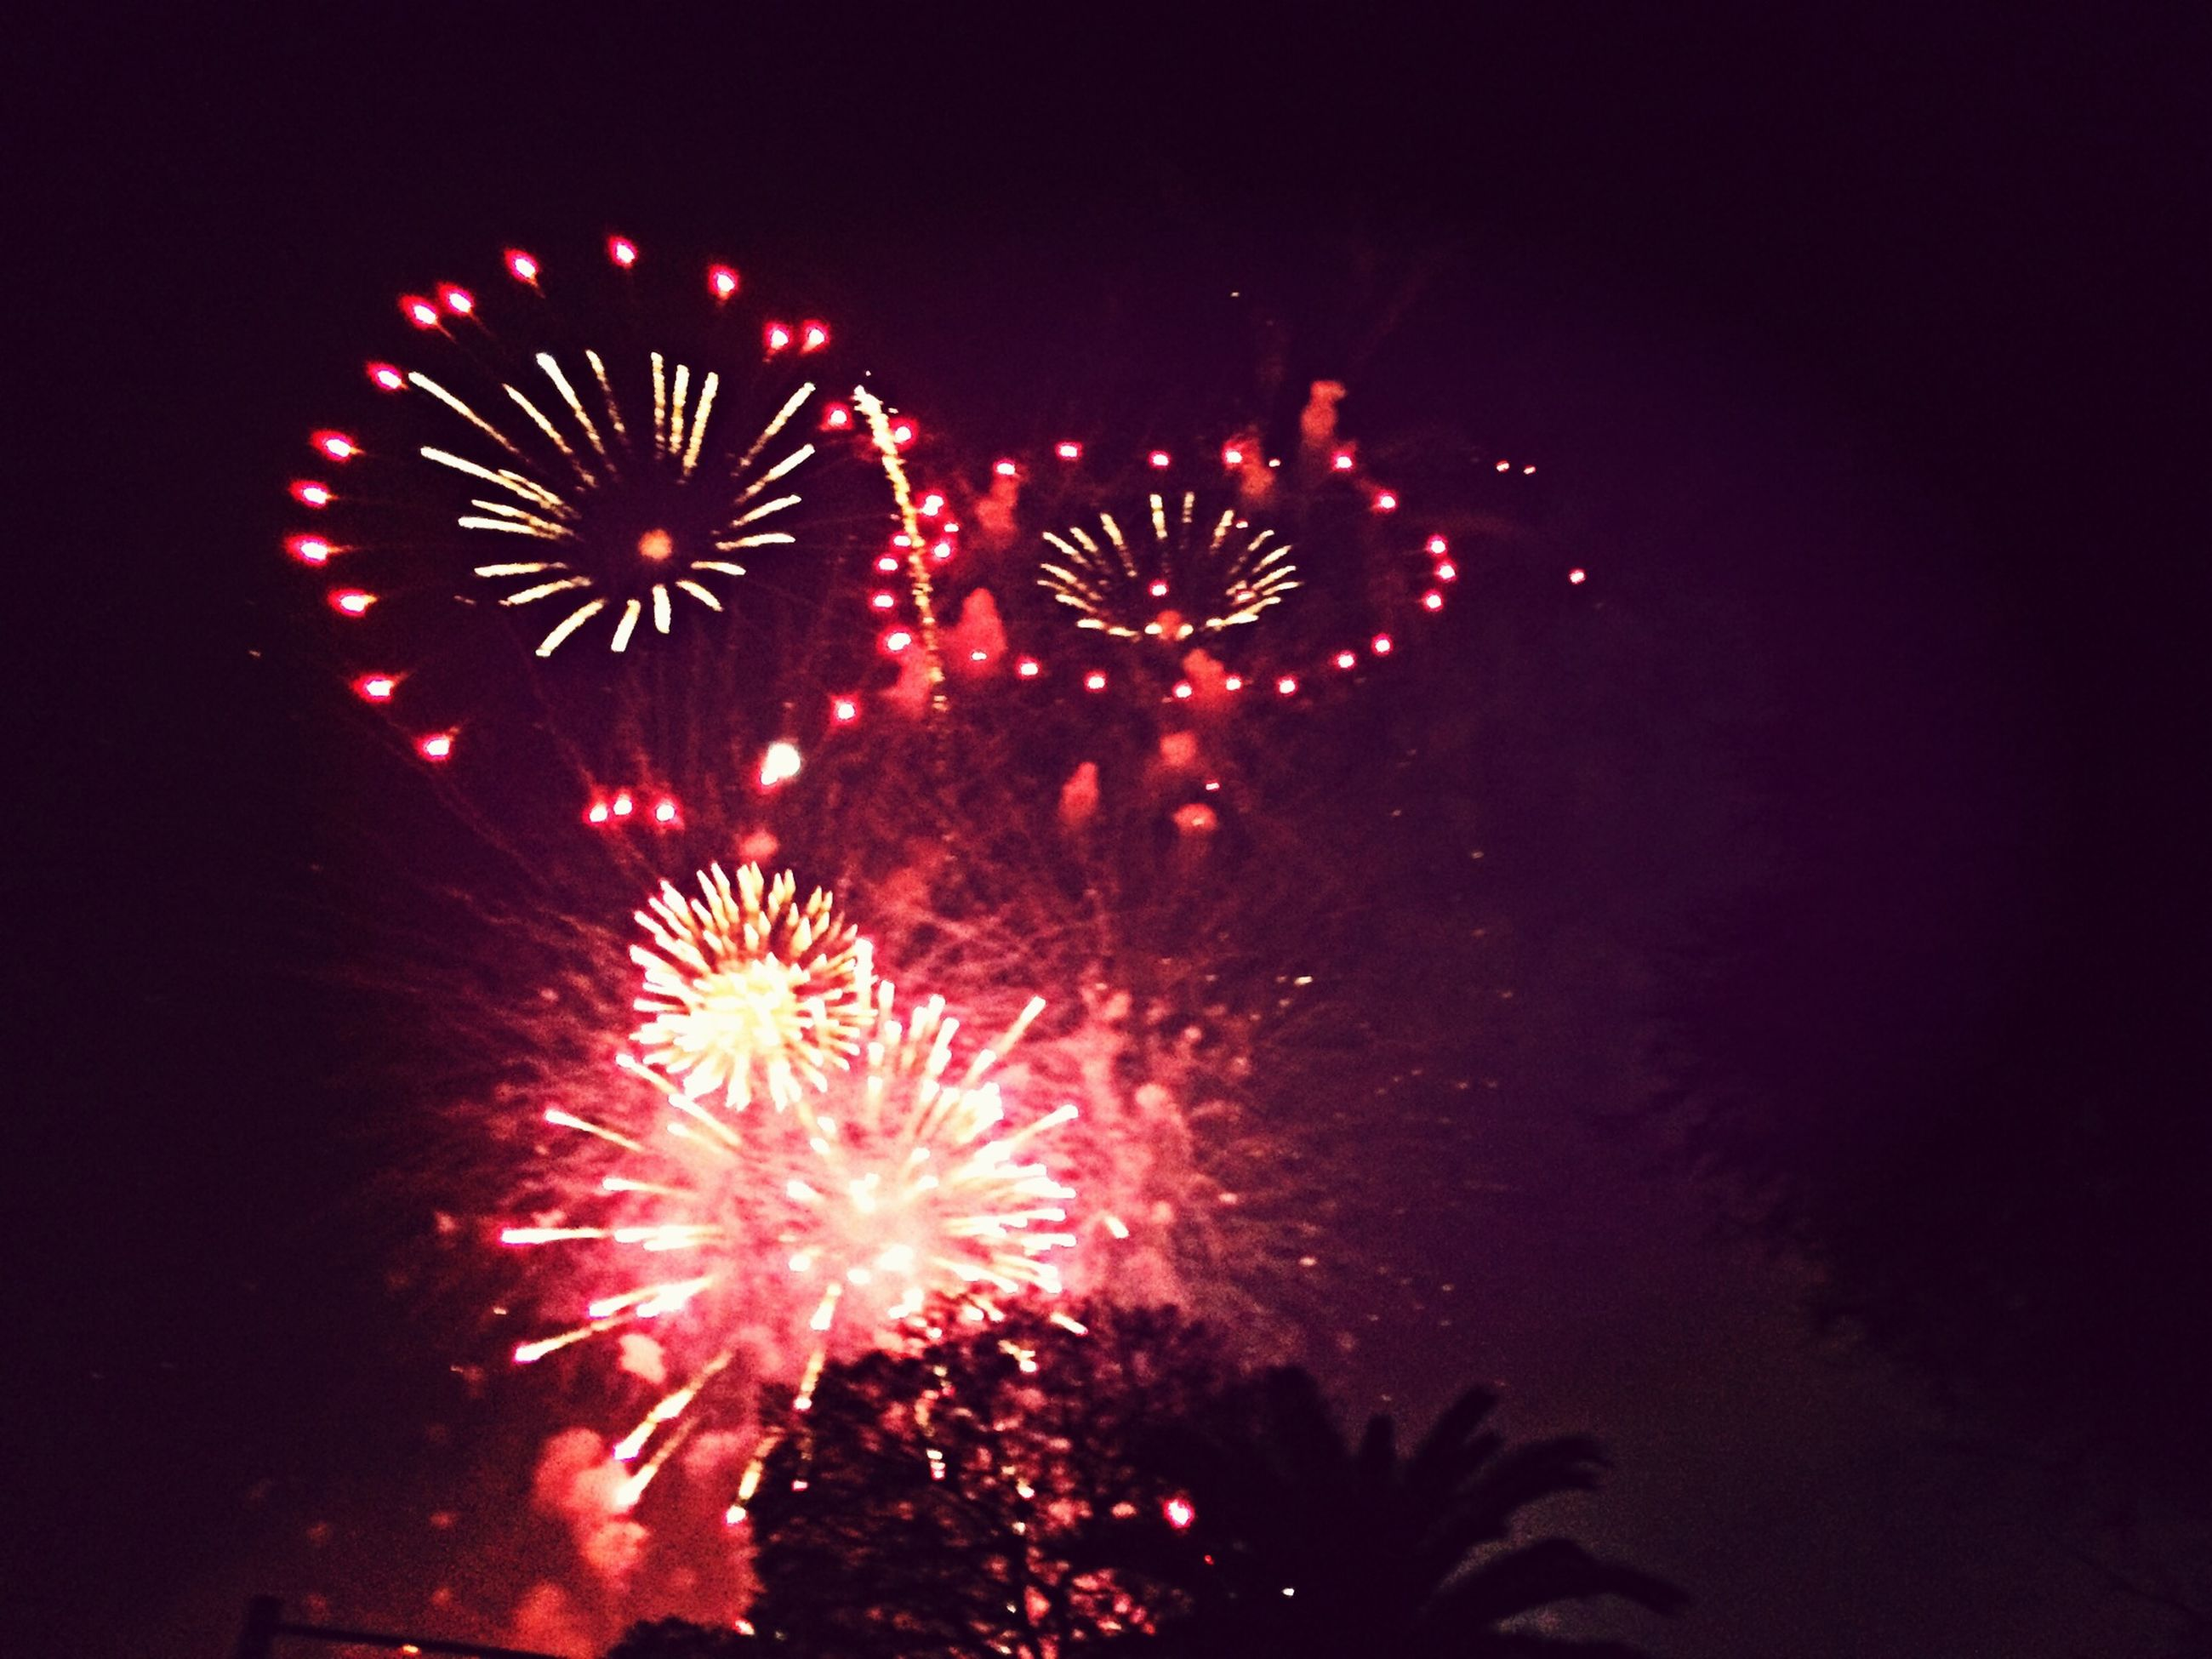 night, celebration, firework display, illuminated, exploding, arts culture and entertainment, firework - man made object, event, glowing, long exposure, motion, entertainment, sparks, celebration event, low angle view, firework, sky, blurred motion, multi colored, fire - natural phenomenon